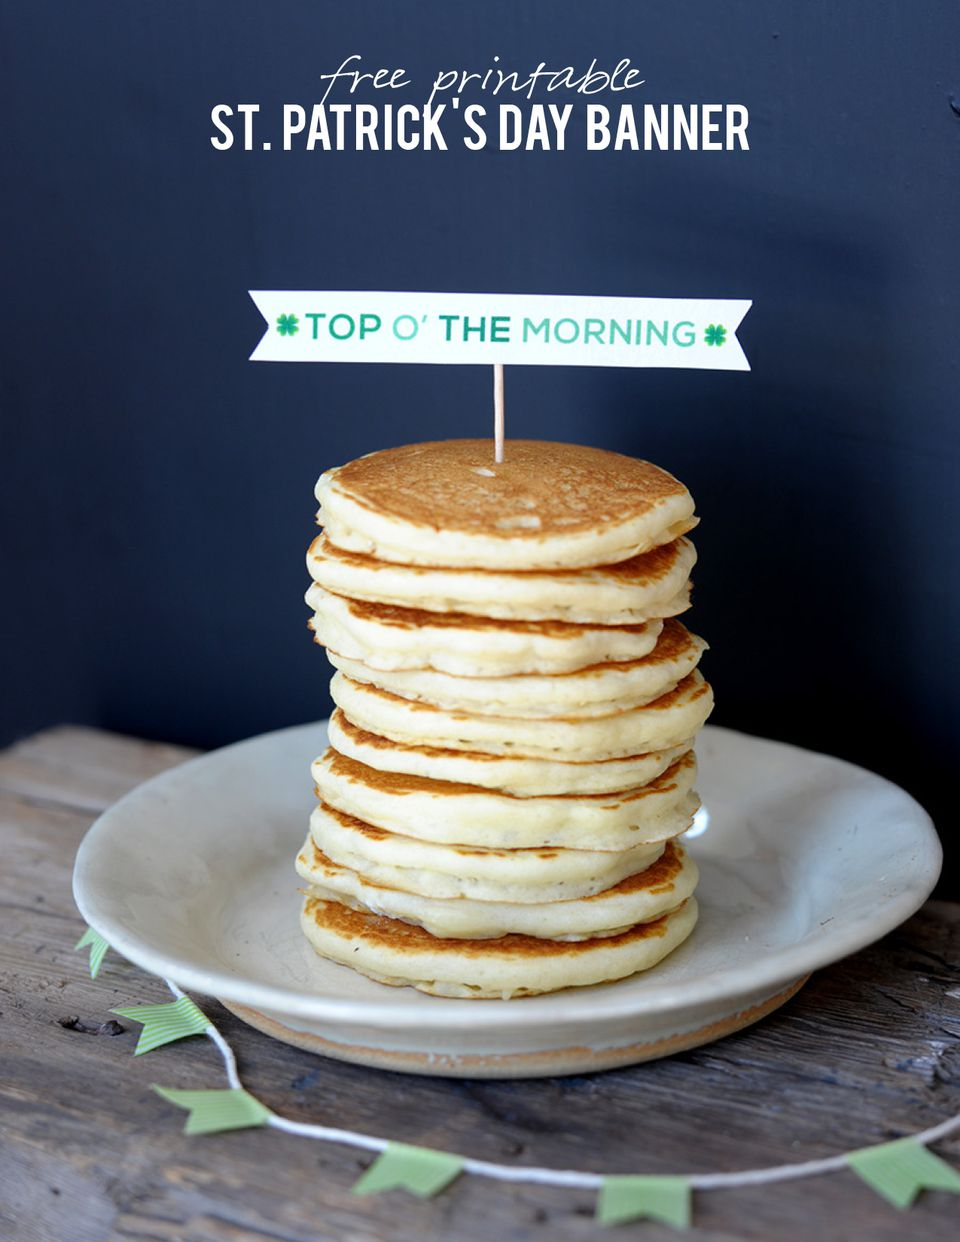 Top Of The Morning Breakfast Banner